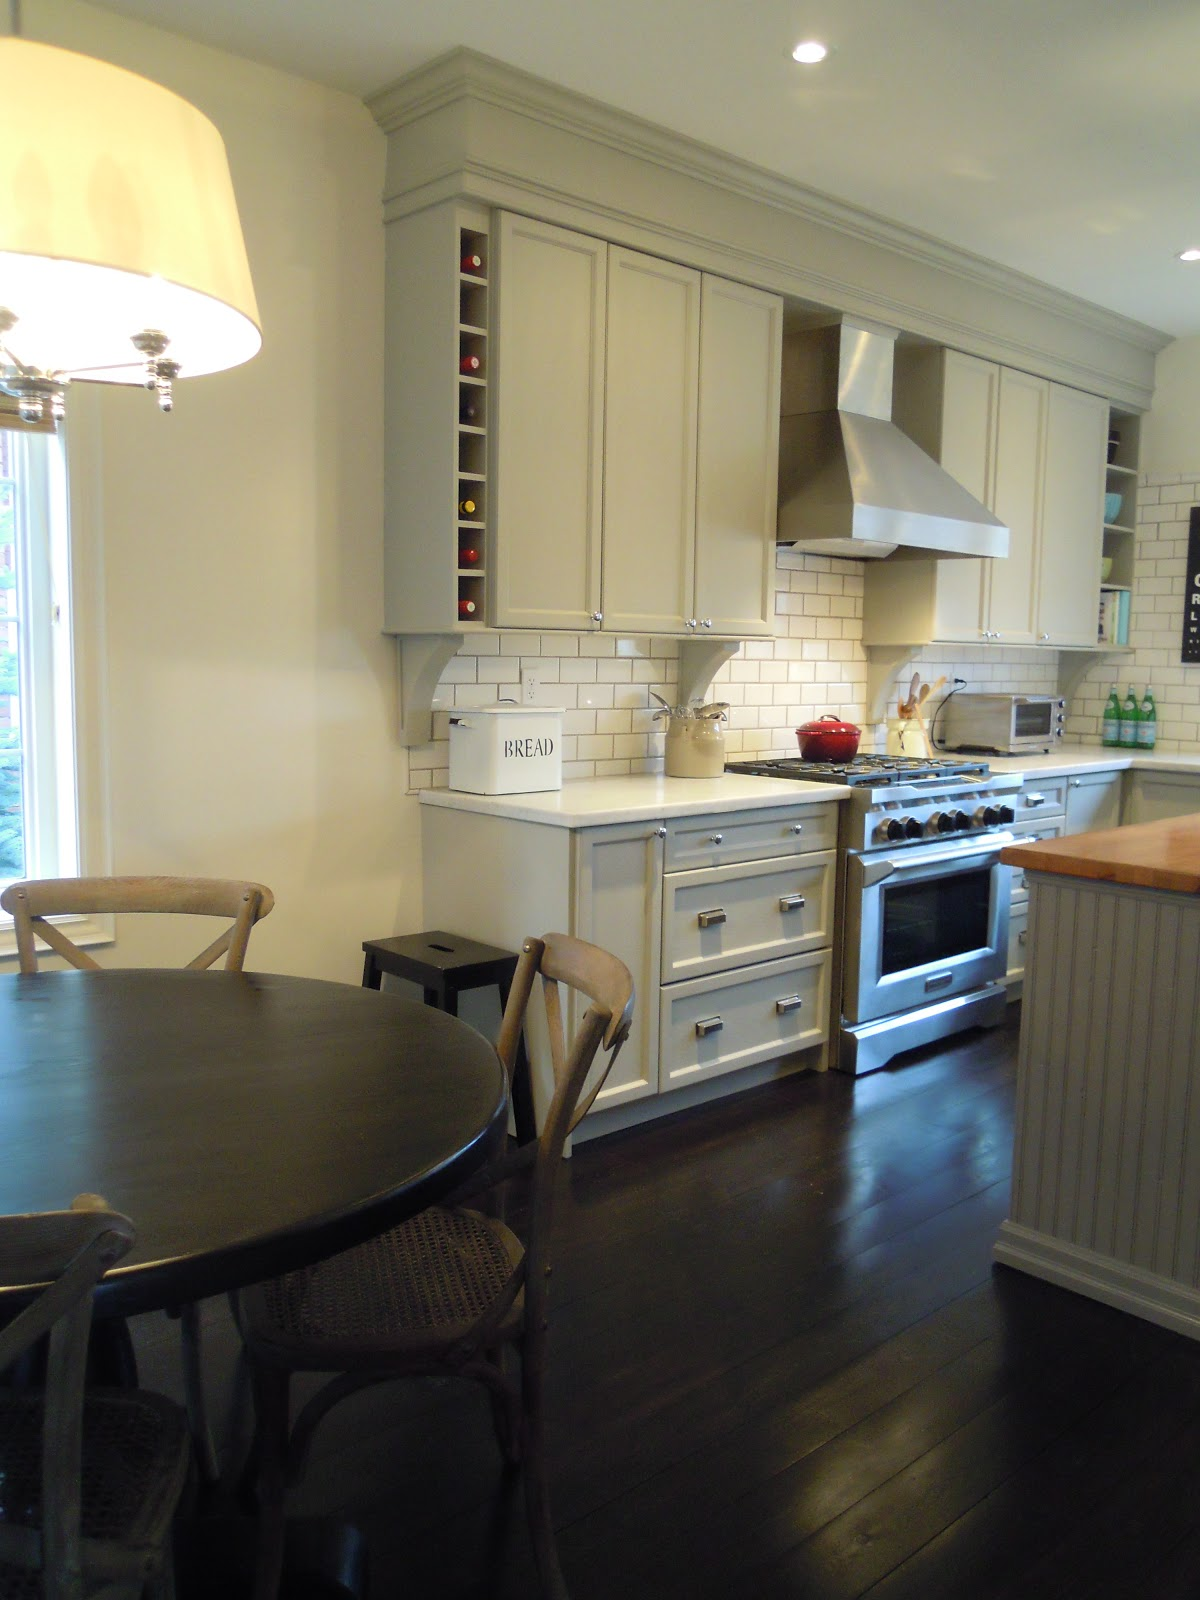 Finally our completed kitchen , from builder basic to dream kitchen